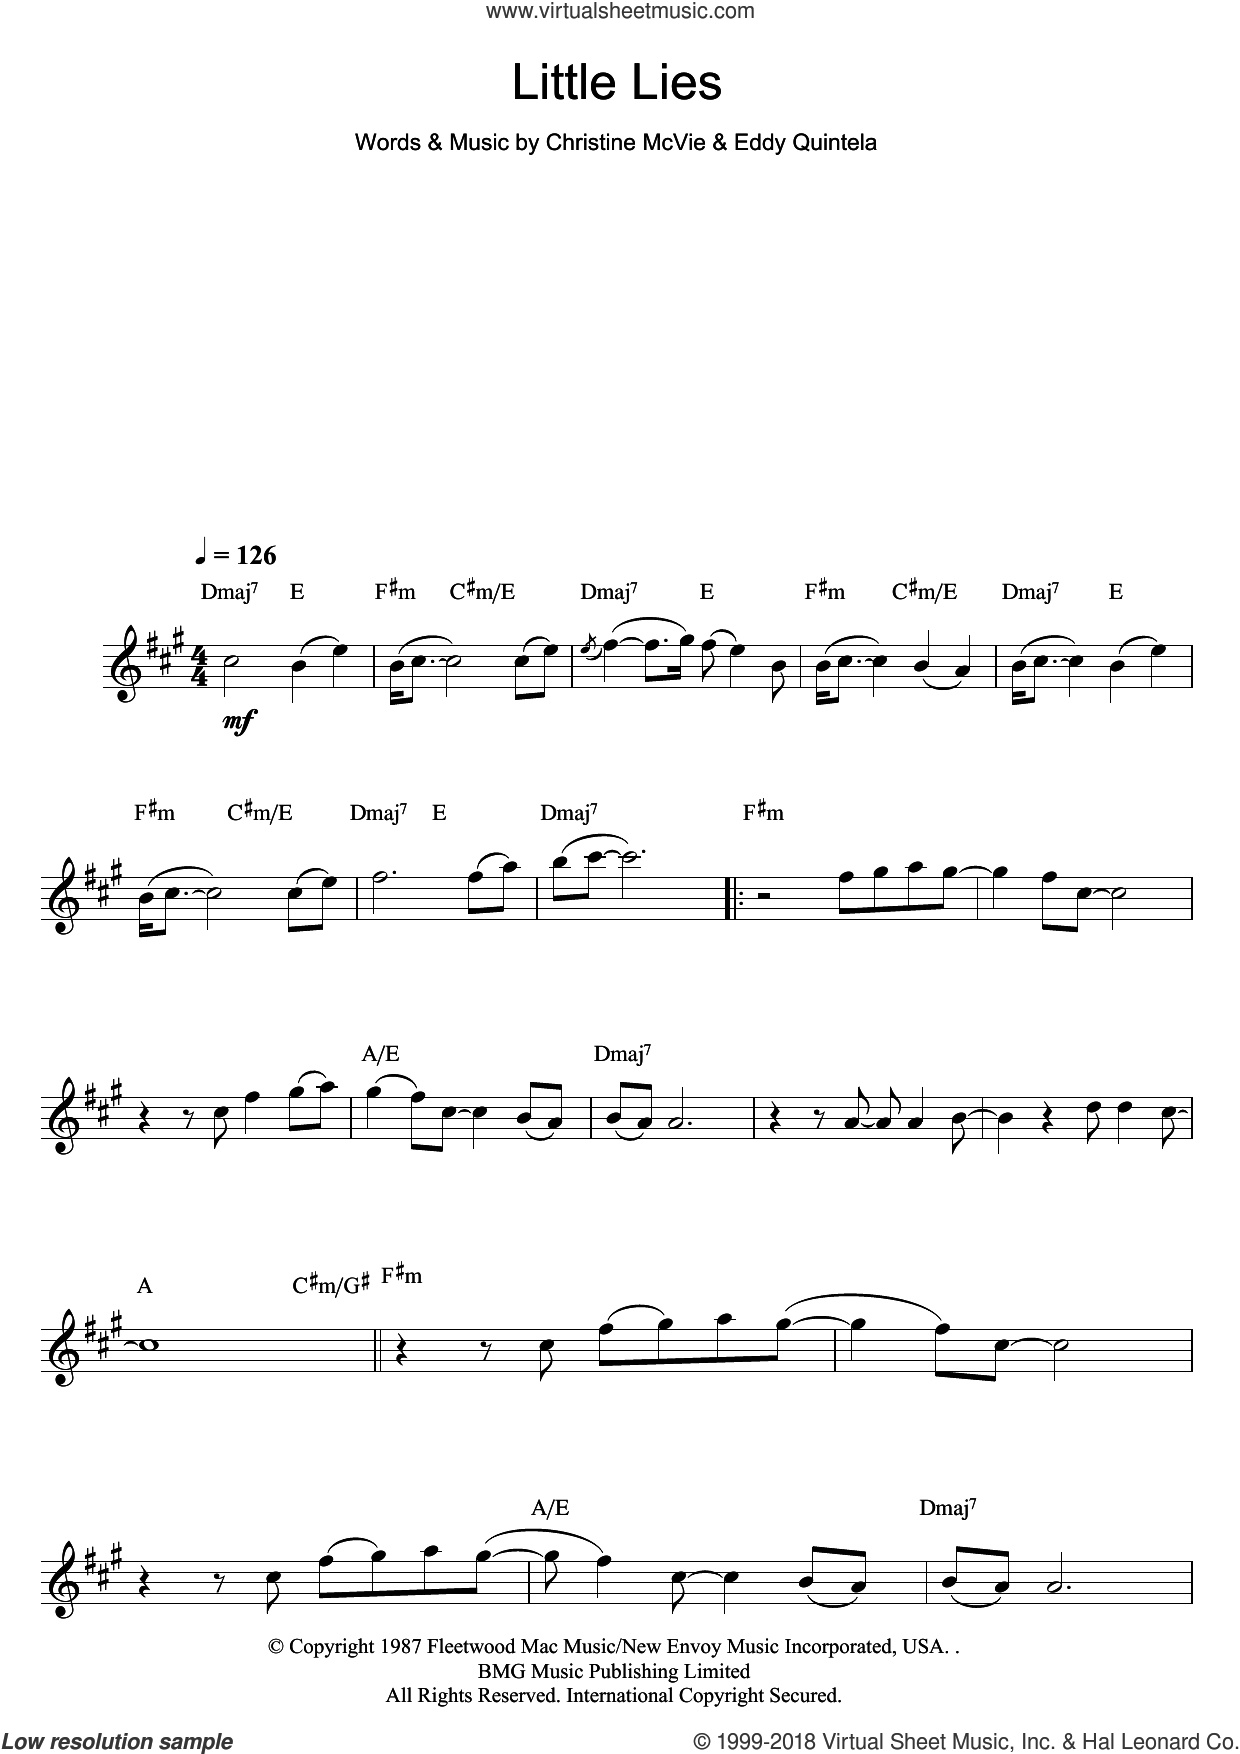 Little Lies sheet music for flute solo by Eddy Quintela, Fleetwood Mac and Christine McVie. Score Image Preview.